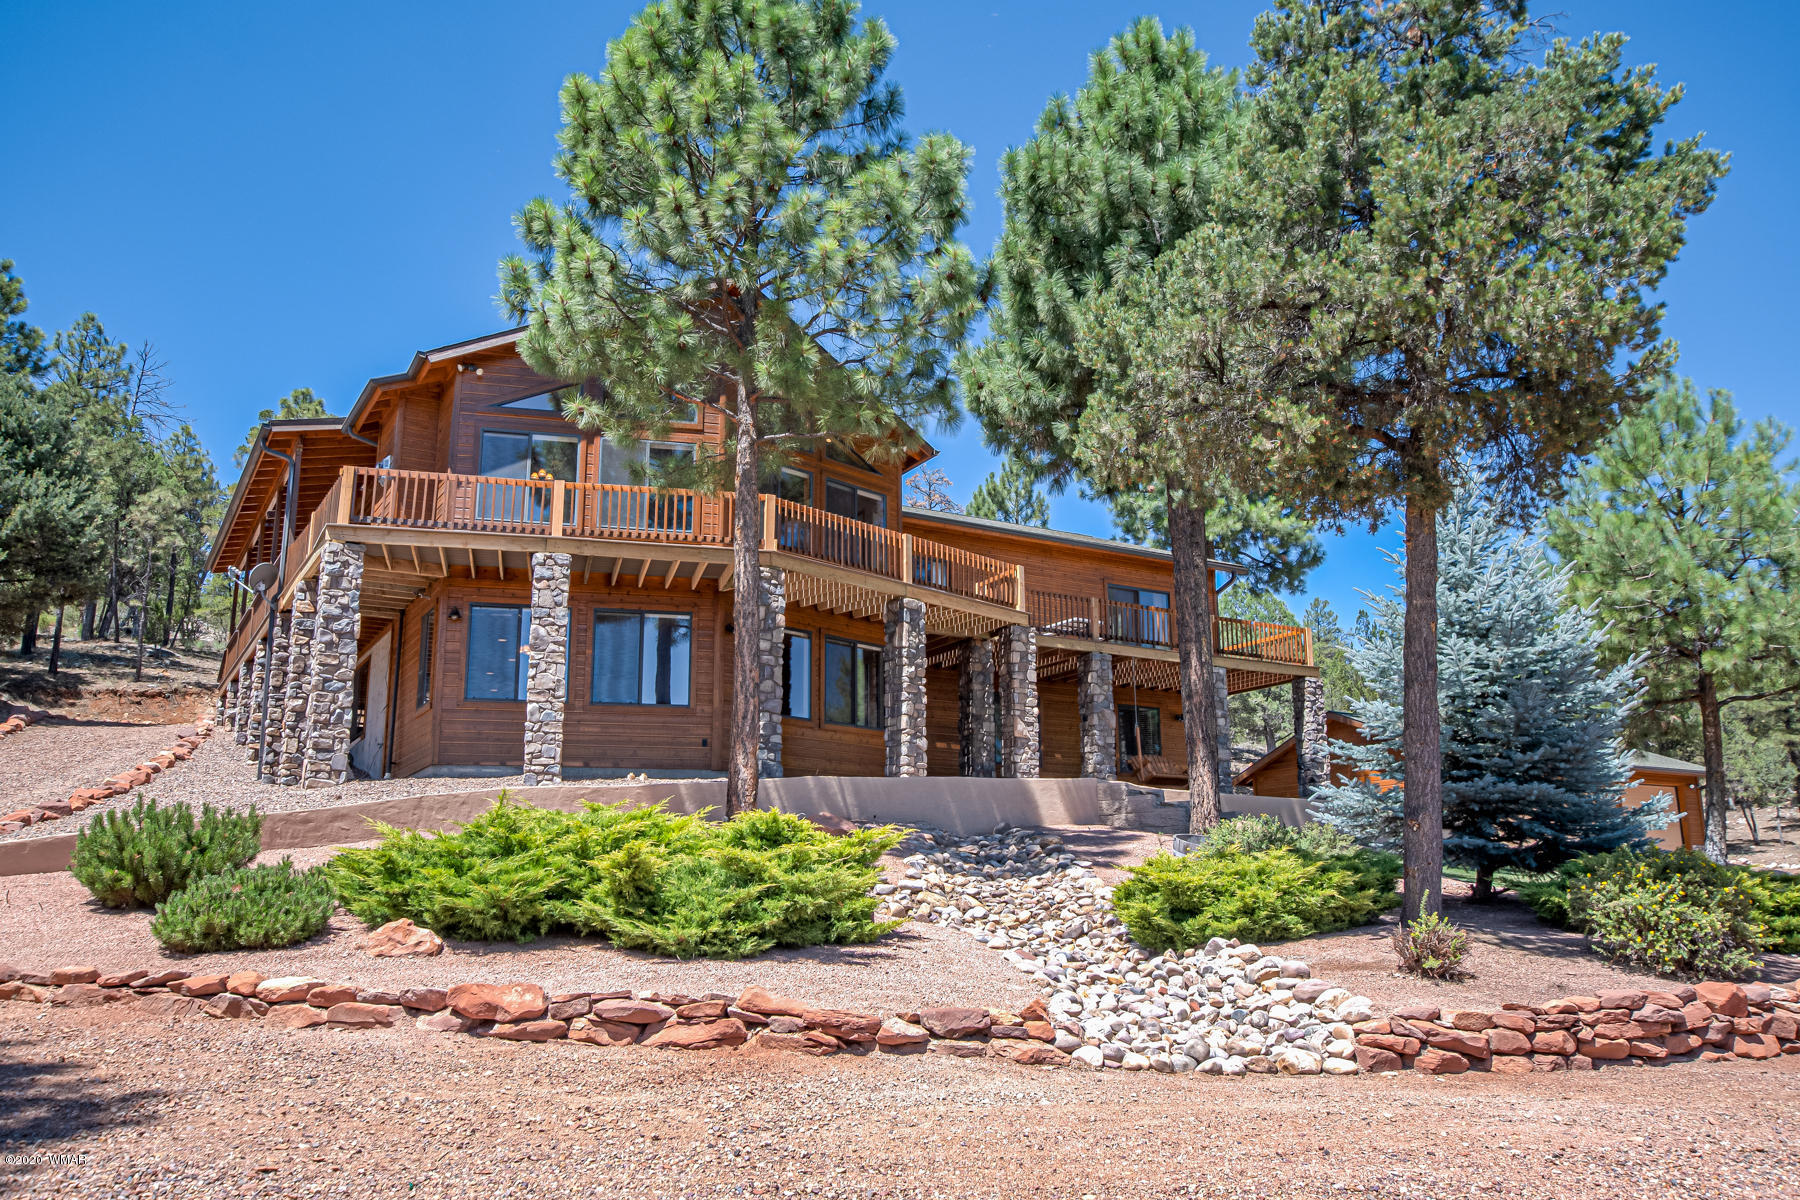 This home in Heber has it all!  Situated on just over 3.5 acres, you will experience privacy and uninterrupted views. Indoors, bright natural light and open spaces will have you feeling at home. Large windows in the great room provide excellent views of the surrounding forest.  Warm winter nights by the fireplace await. The kitchen is well equipped for preparing your favorite meals. The large center island provides excellent prep space as well as an eating area. A walk-in pantry showcases the entirety of your ingredients. The dining space off the kitchen allows for a more formal setting. Wind down at the end of the day in the private master suite. Embrace the outdoors at your leisure with direct deck access. A stacked washer and dryer in the master closet adds practicality. Dual vanities in the master bathroom will make your mornings a breeze! Six additional choices of bedroom make this home an excellent choice for families and hosting guests. Make memories playing games and watching movies in the lower level family room. Kick off your boots and get muddy clothes straight into the laundry in the lower level mudroom. Wrap around decks provide every opportunity to witness the breathtaking views. Your tools, toys, and vehicles will be safe from the elements in the detached three car garage. Gather around the firepit to roast marshmallows! The grounds directly surrounding the home are beautifully manicured, while the forest land encourages exploration. Keep in shape in a thrilling way by rappelling on the stunning rock outcropping featured on the property. This incredible Heber home offers an opportunity to live a luxurious and exciting mountain lifestyle. Don't let this chance pass you by, schedule to see today!